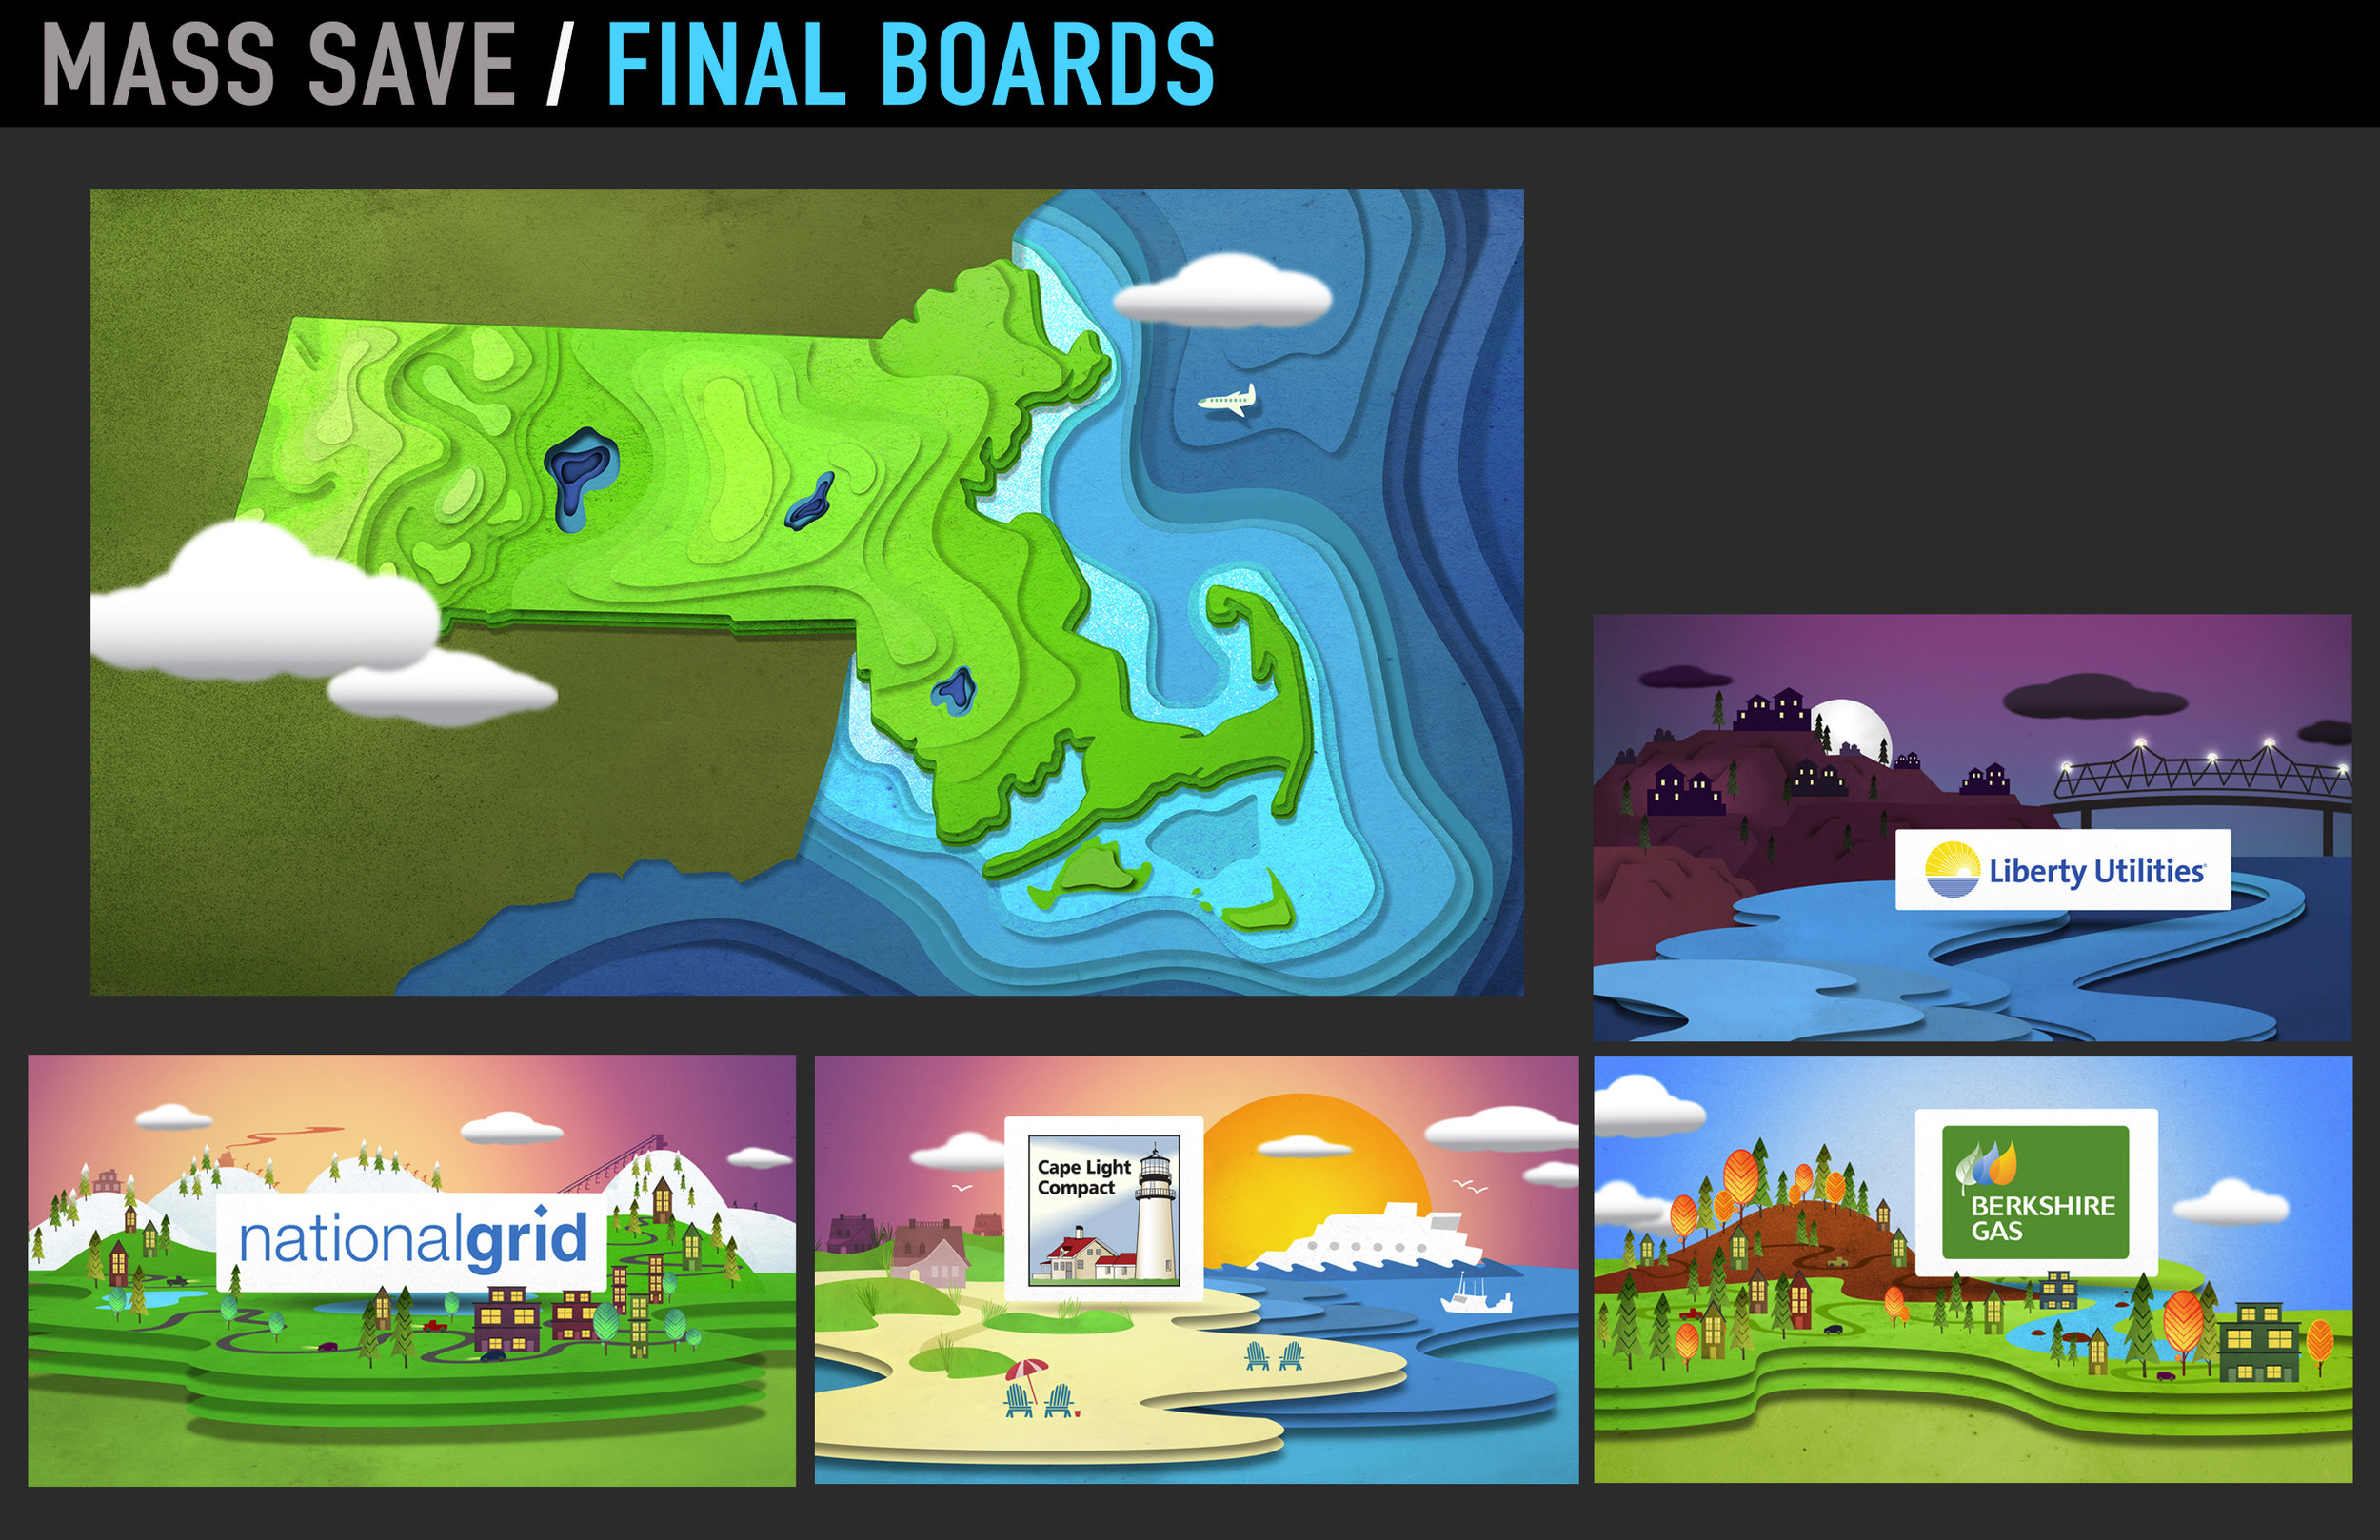 MAss_Save_Final_Boards.jpg